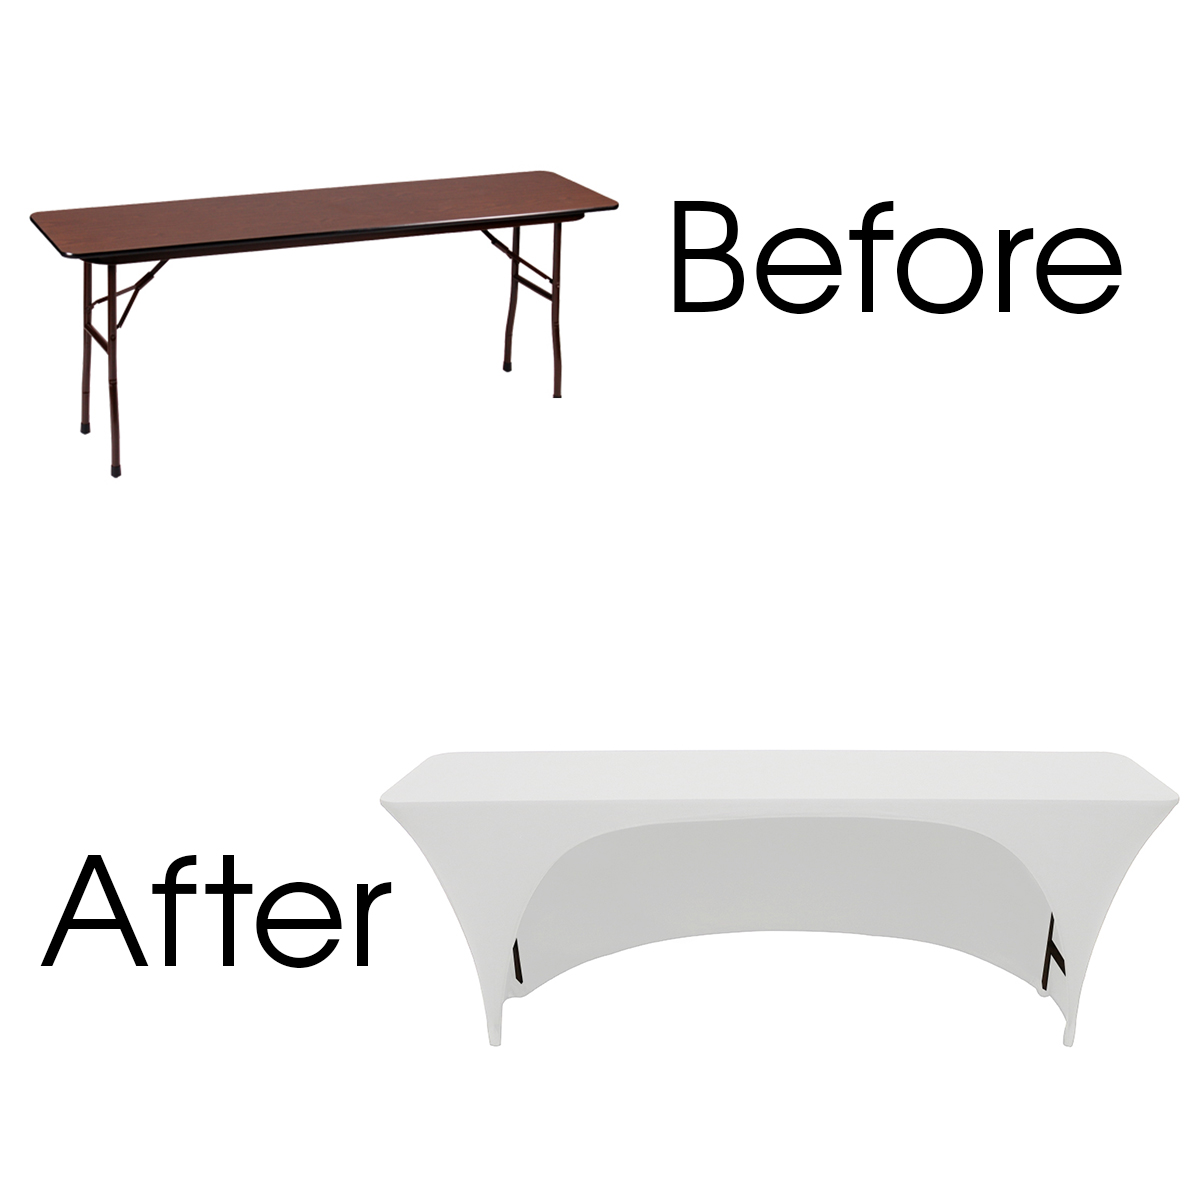 stretch-spandex-6ft-18-inches-open-back-rectangular-table-covers-white-before-after.jpg